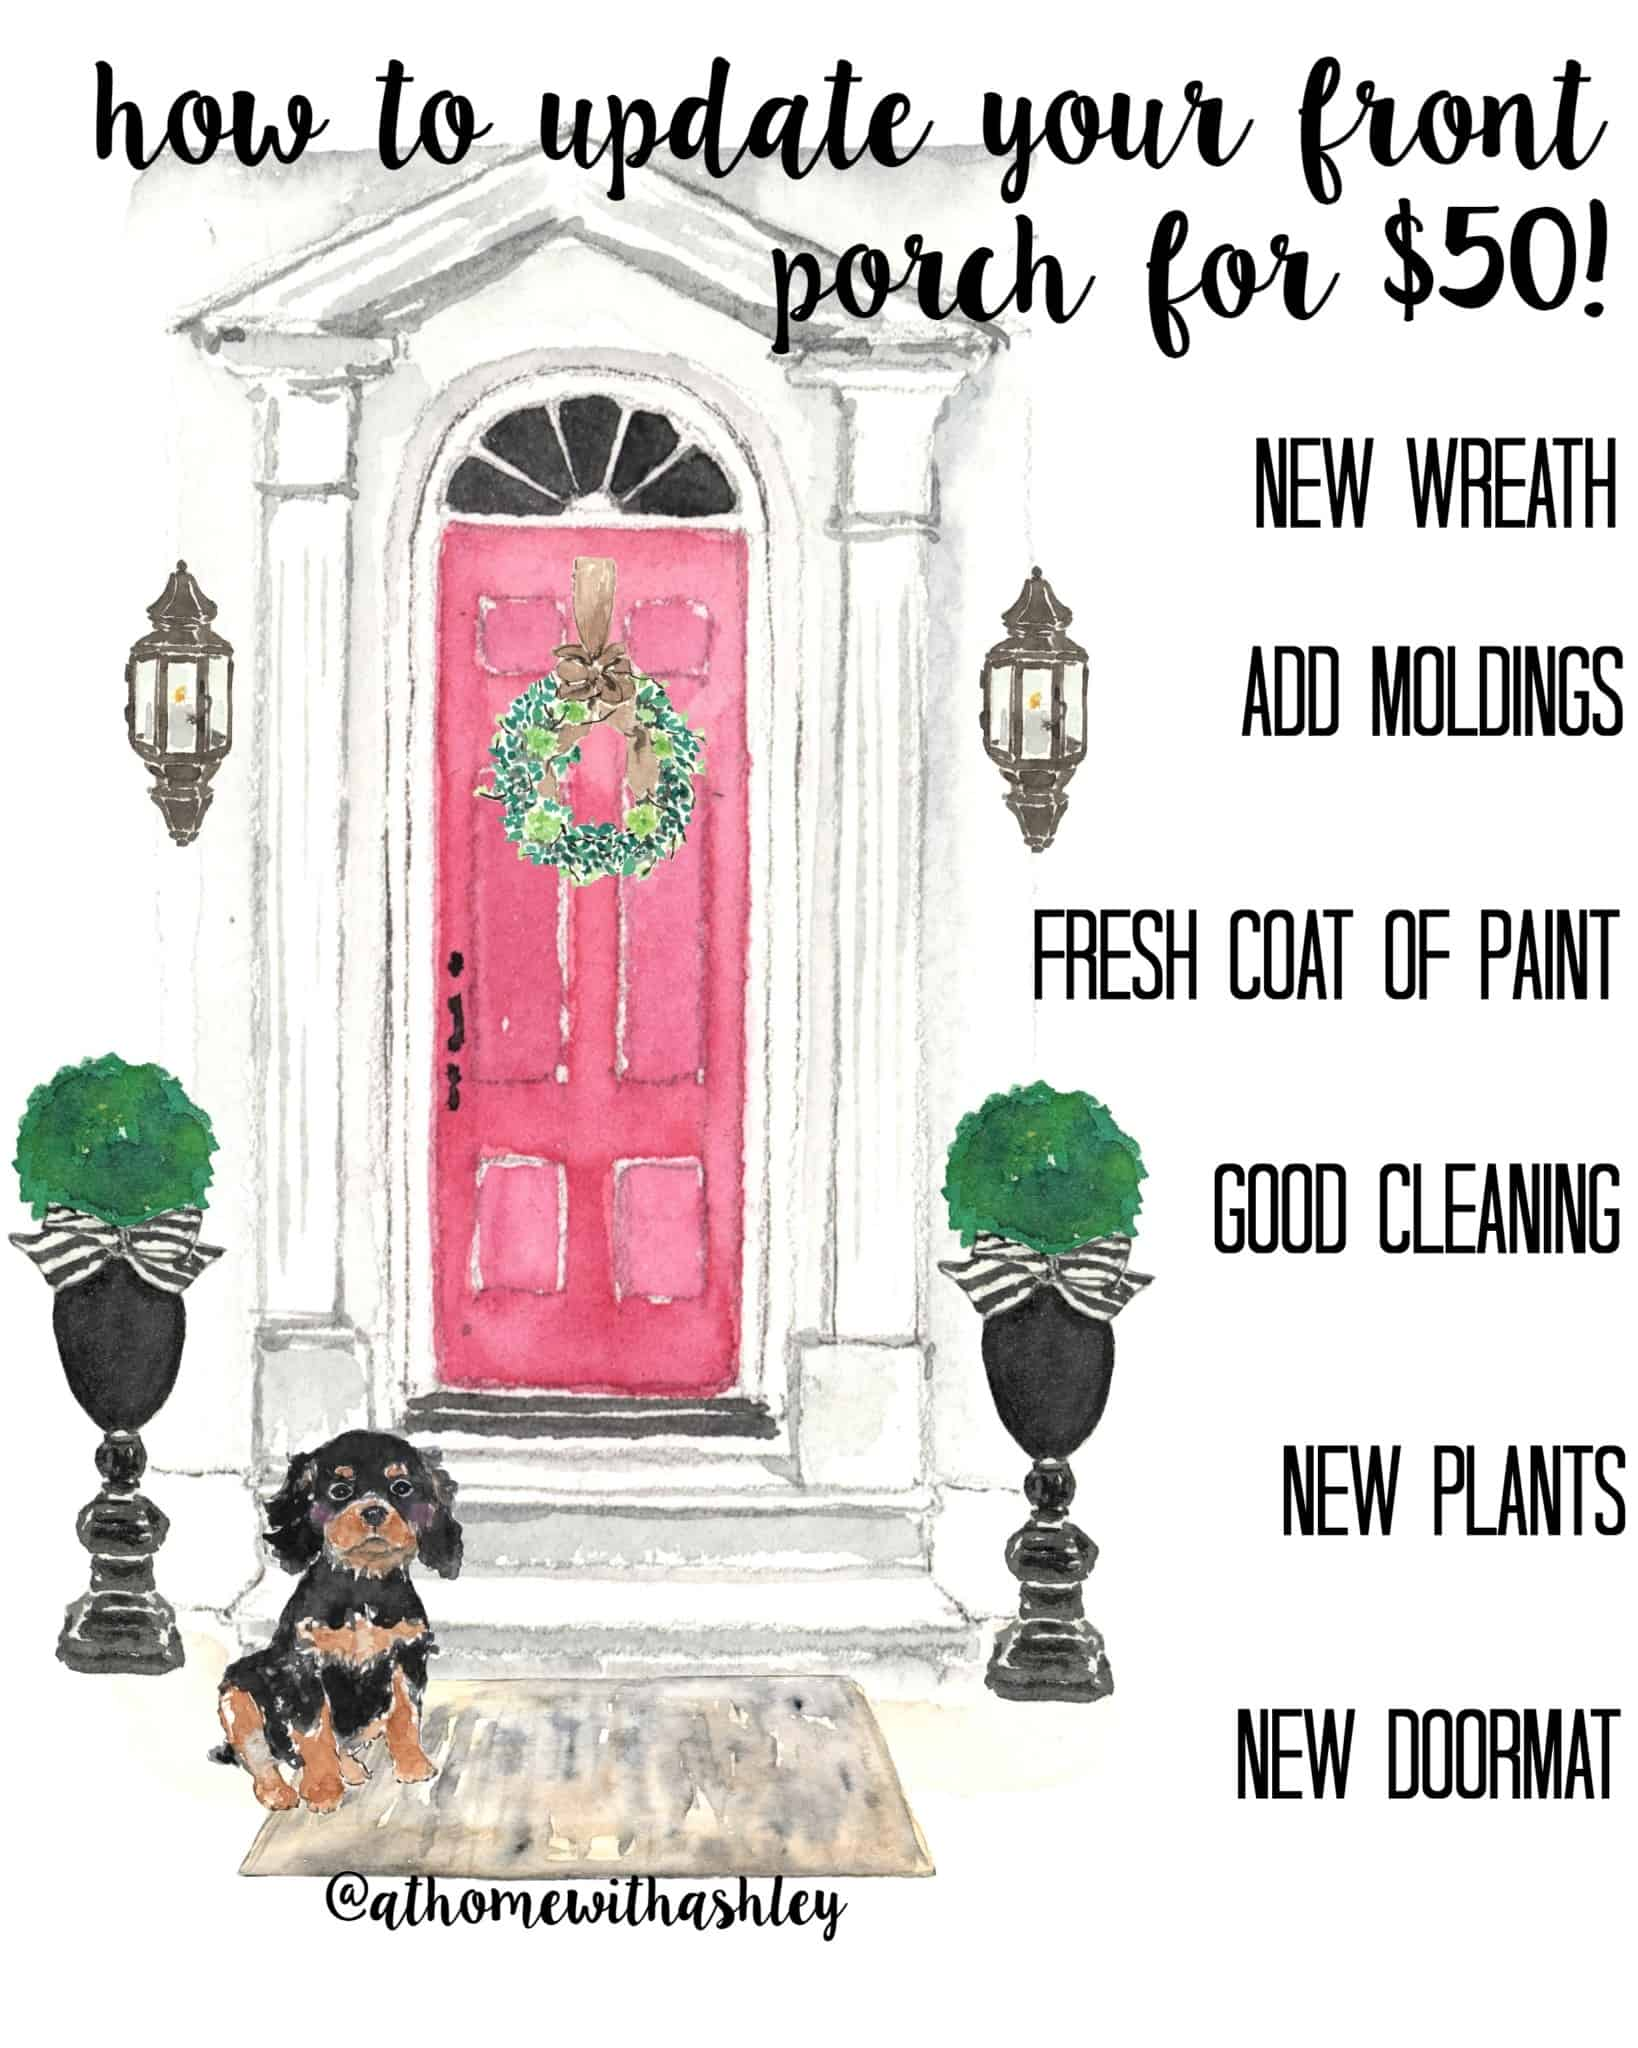 how to update your front porch for $50